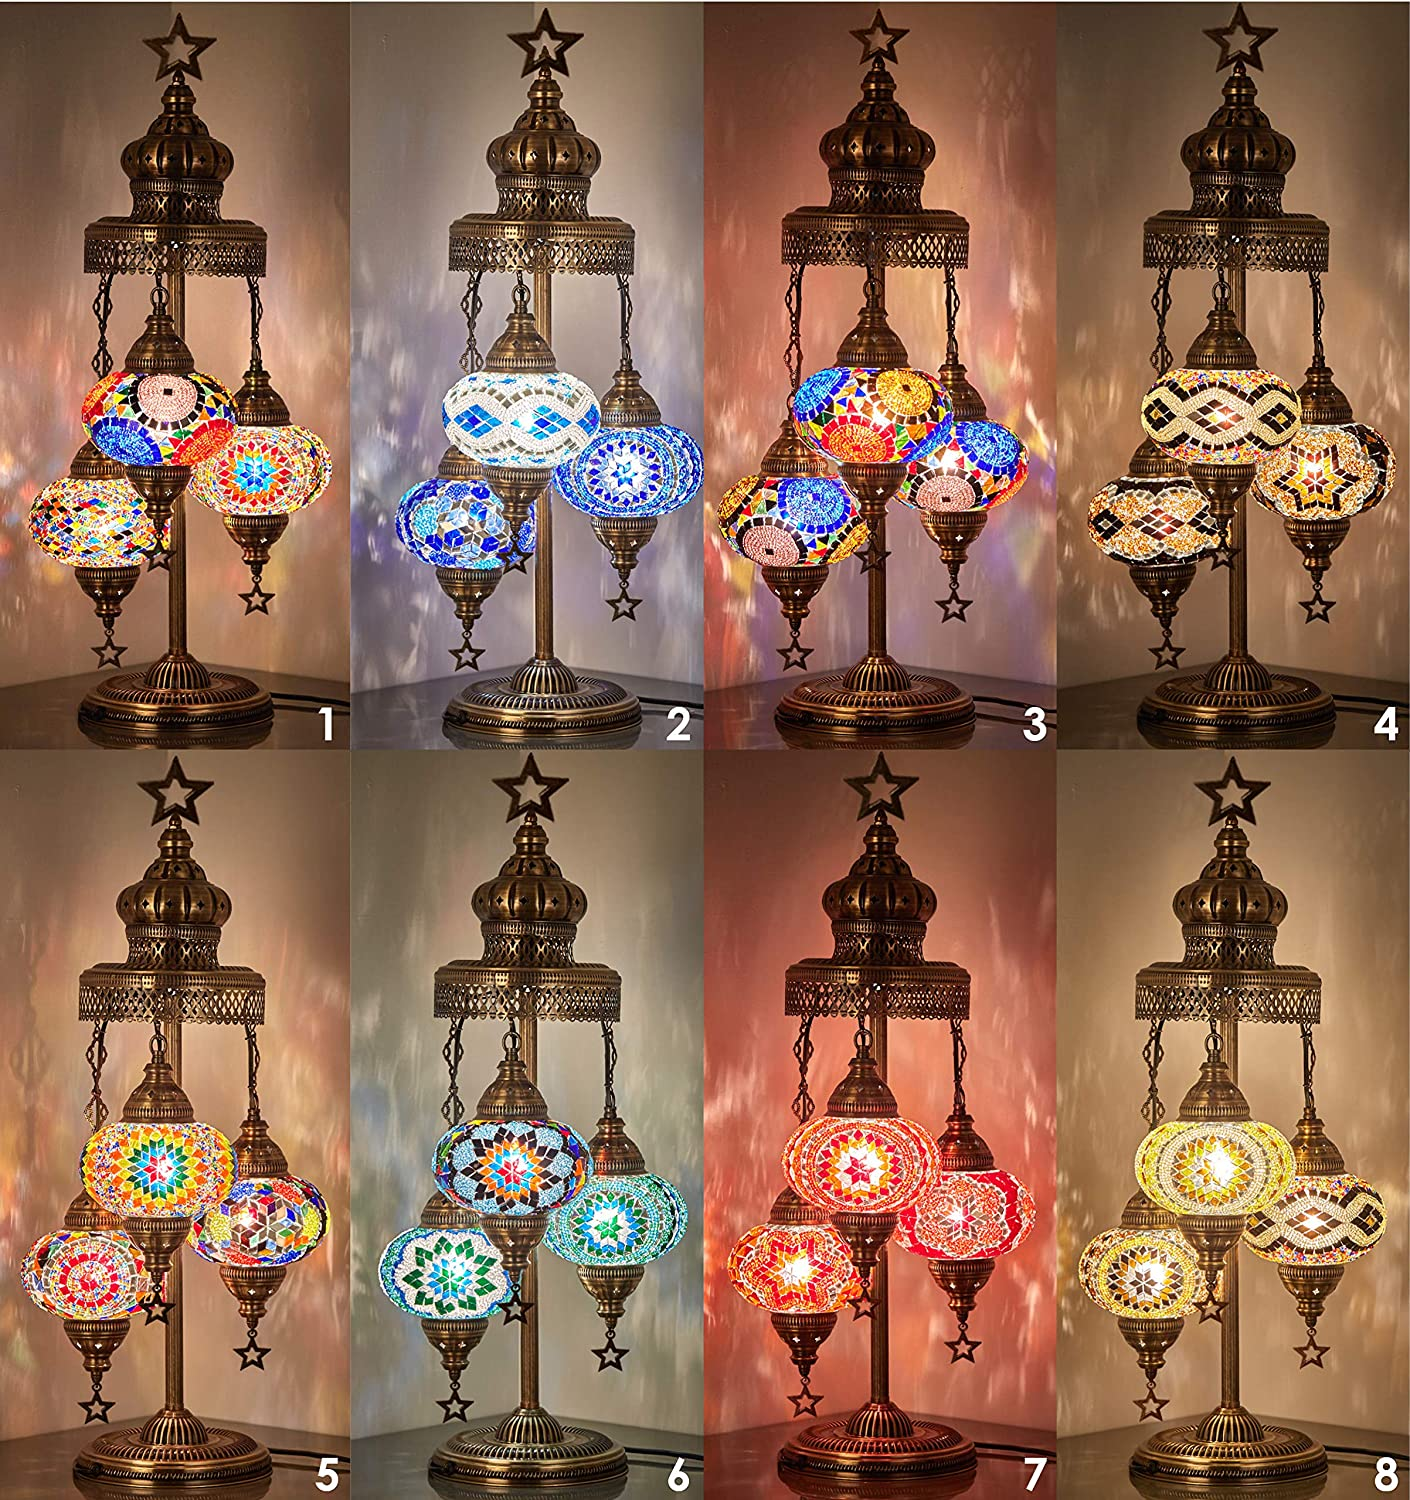 (16 Colors) Demmex 2020-3 Big Globes Magnificent Handmade Turkish Moroccan Mosaic Tiffany Table Desk Bedside Lamp Lampshade Night Accent Mood Light for North American Use, 31